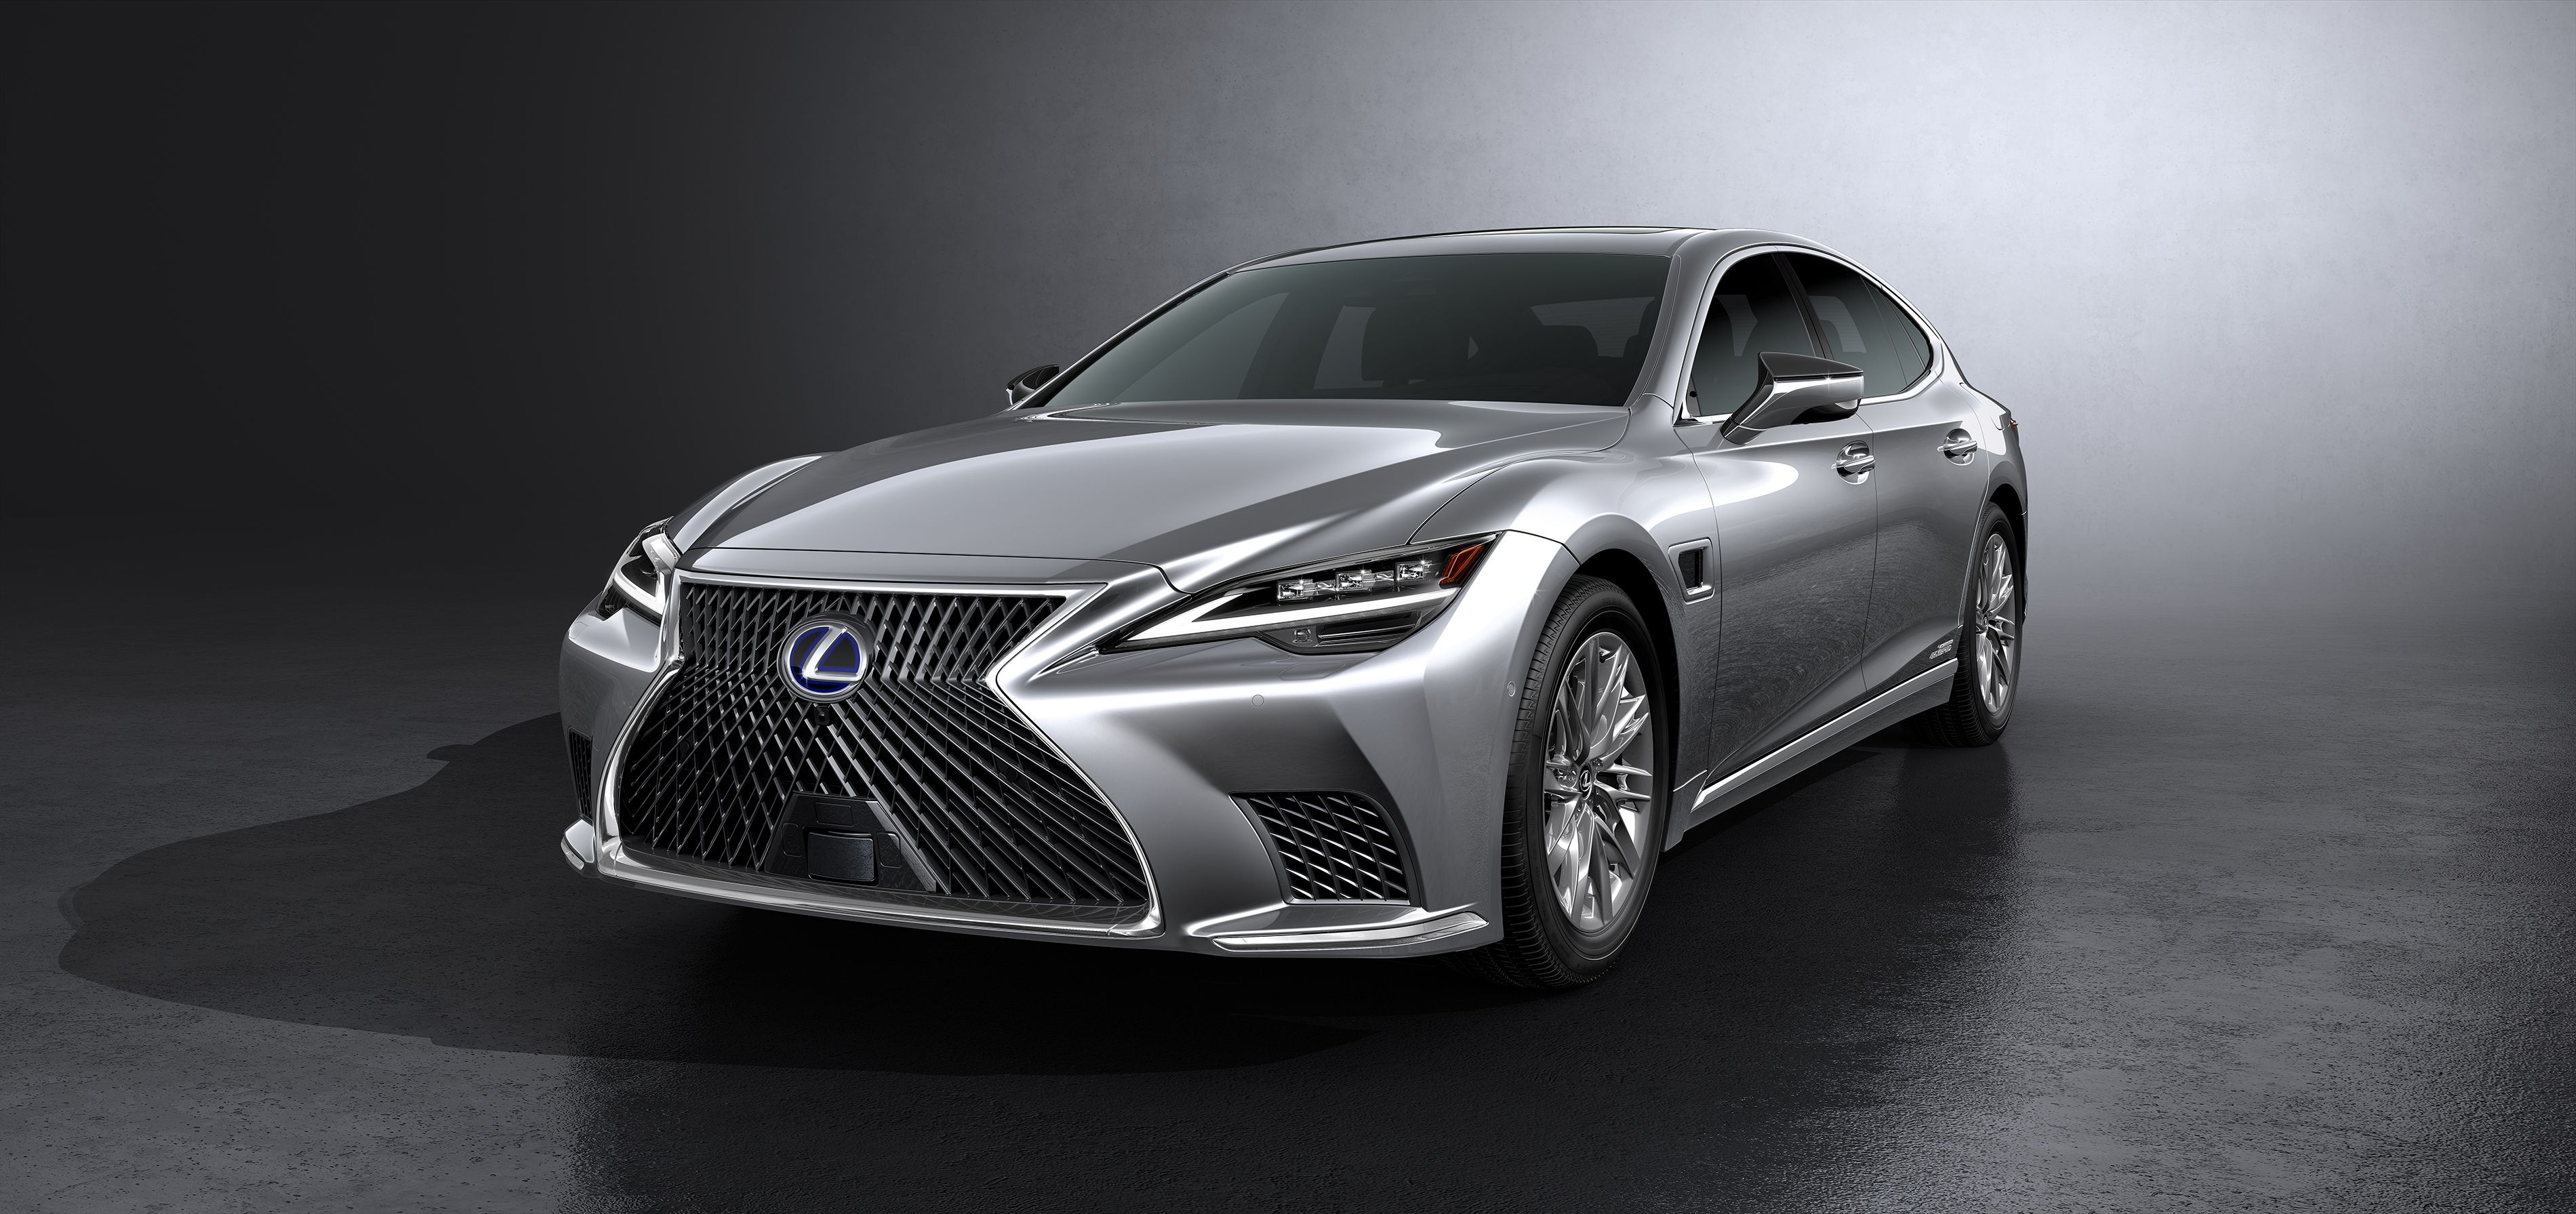 3 Lexus LS Review, Pricing, and Specs